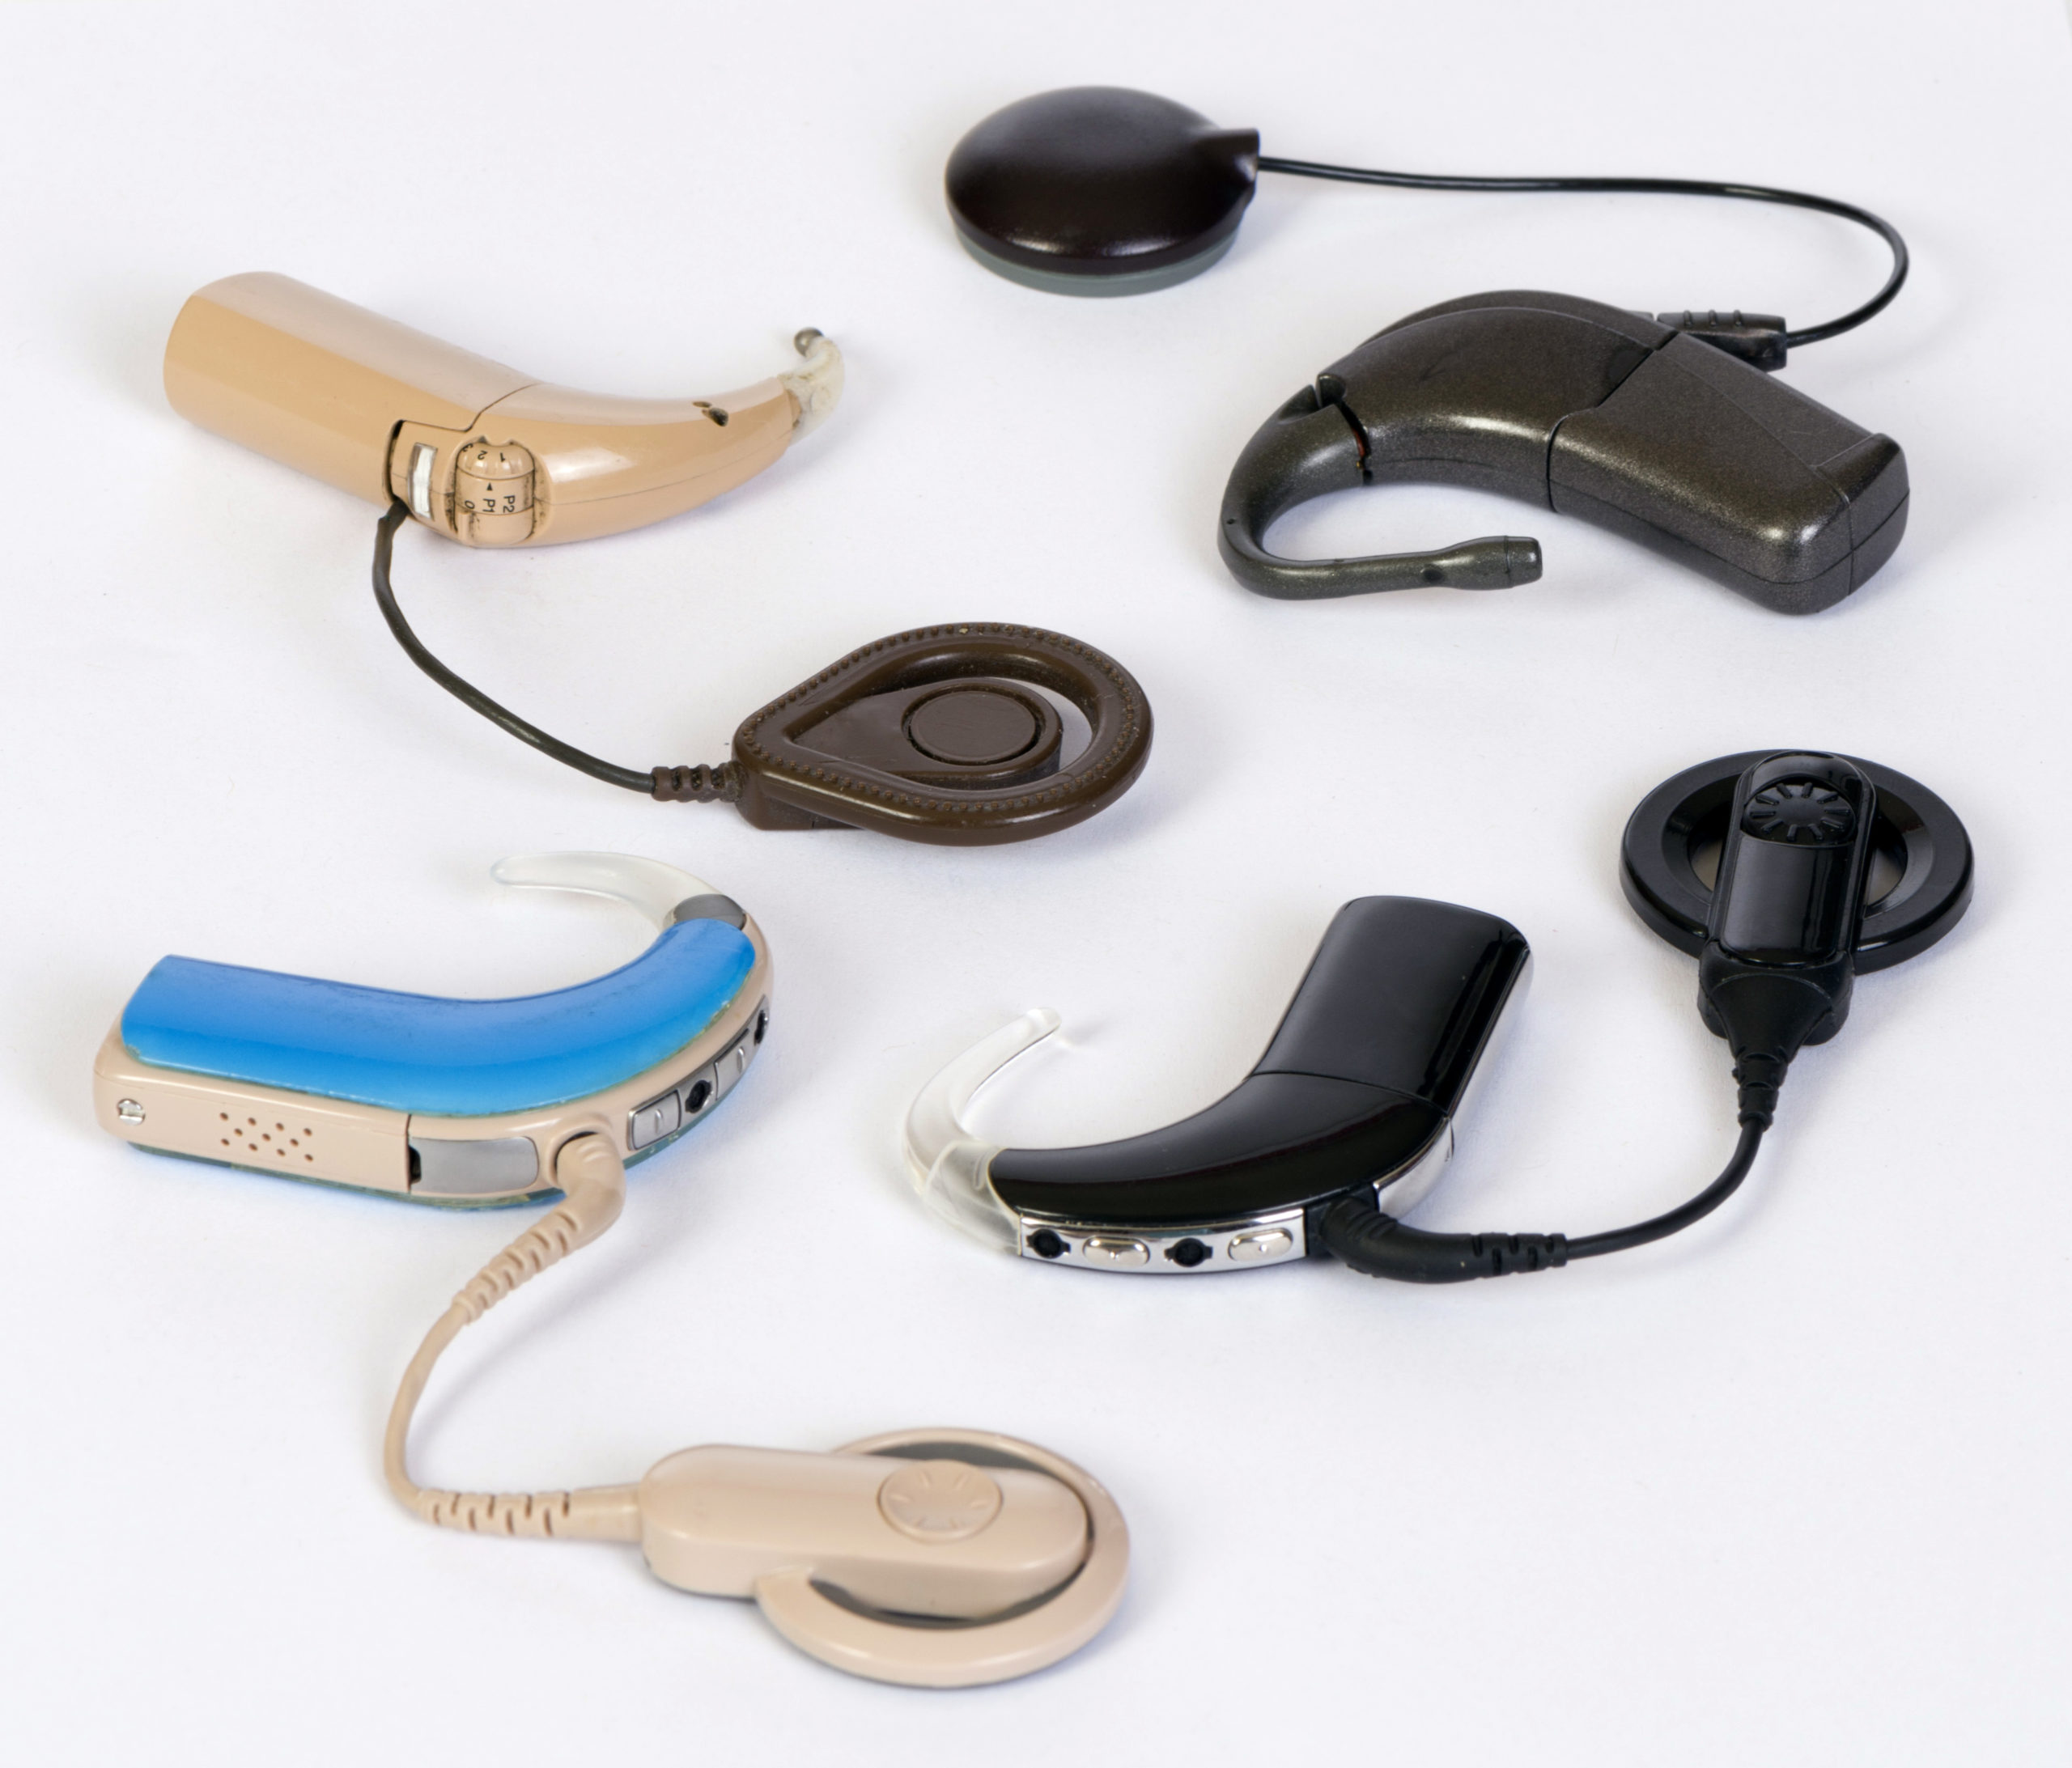 Different Cochlear implant divices